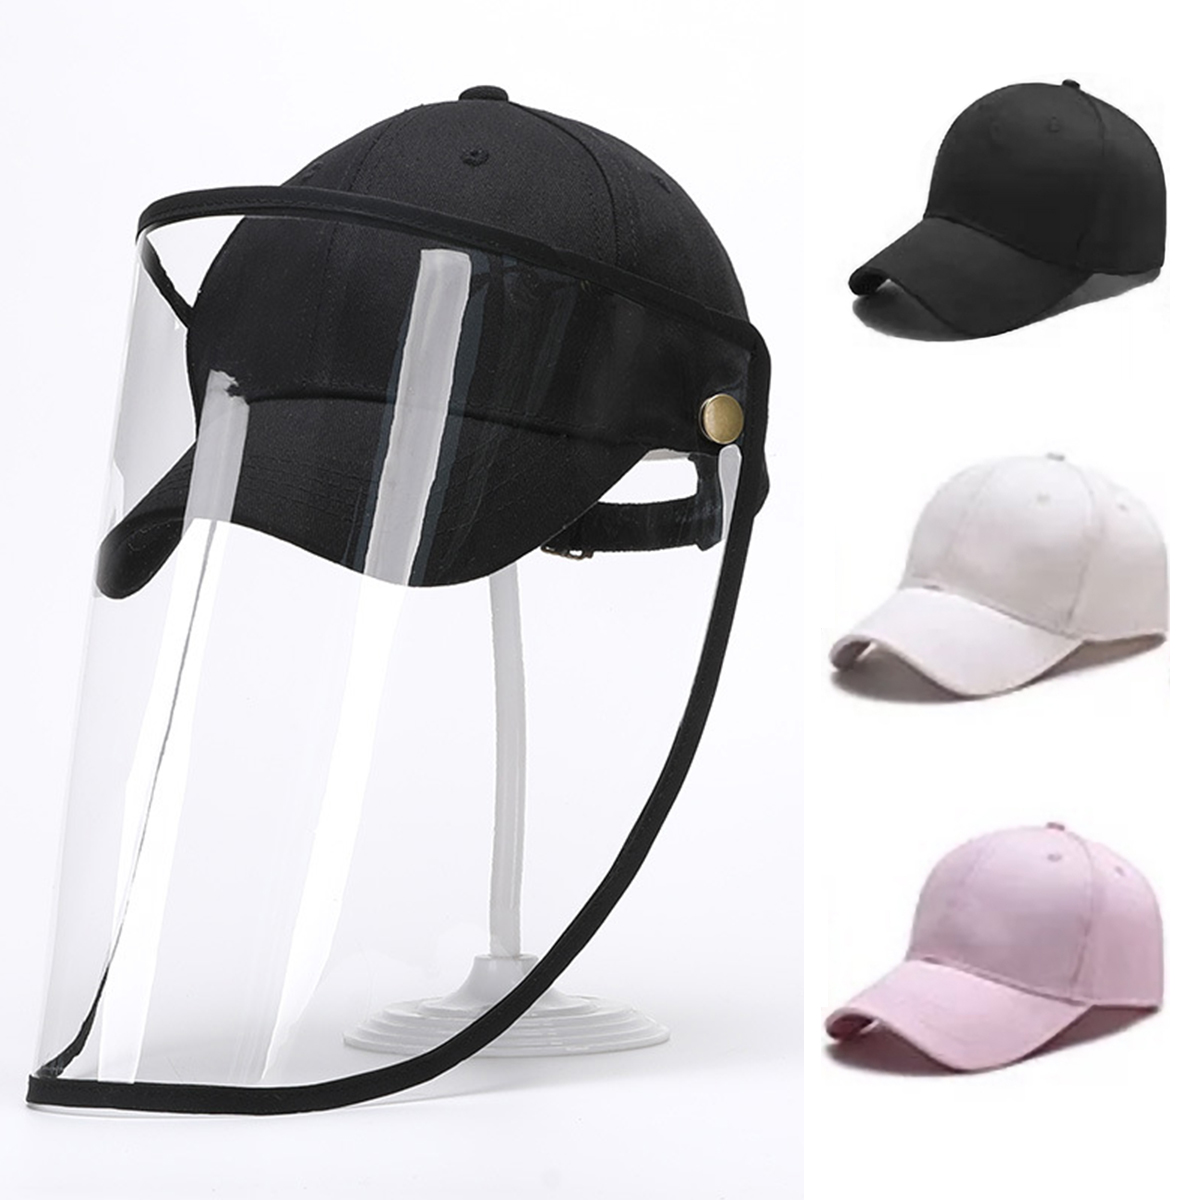 New Anti Spitting Protective Hat Dustproof Baseball Cap With Detachable Faces Shield For Men Women 56-60cm Head Circumference